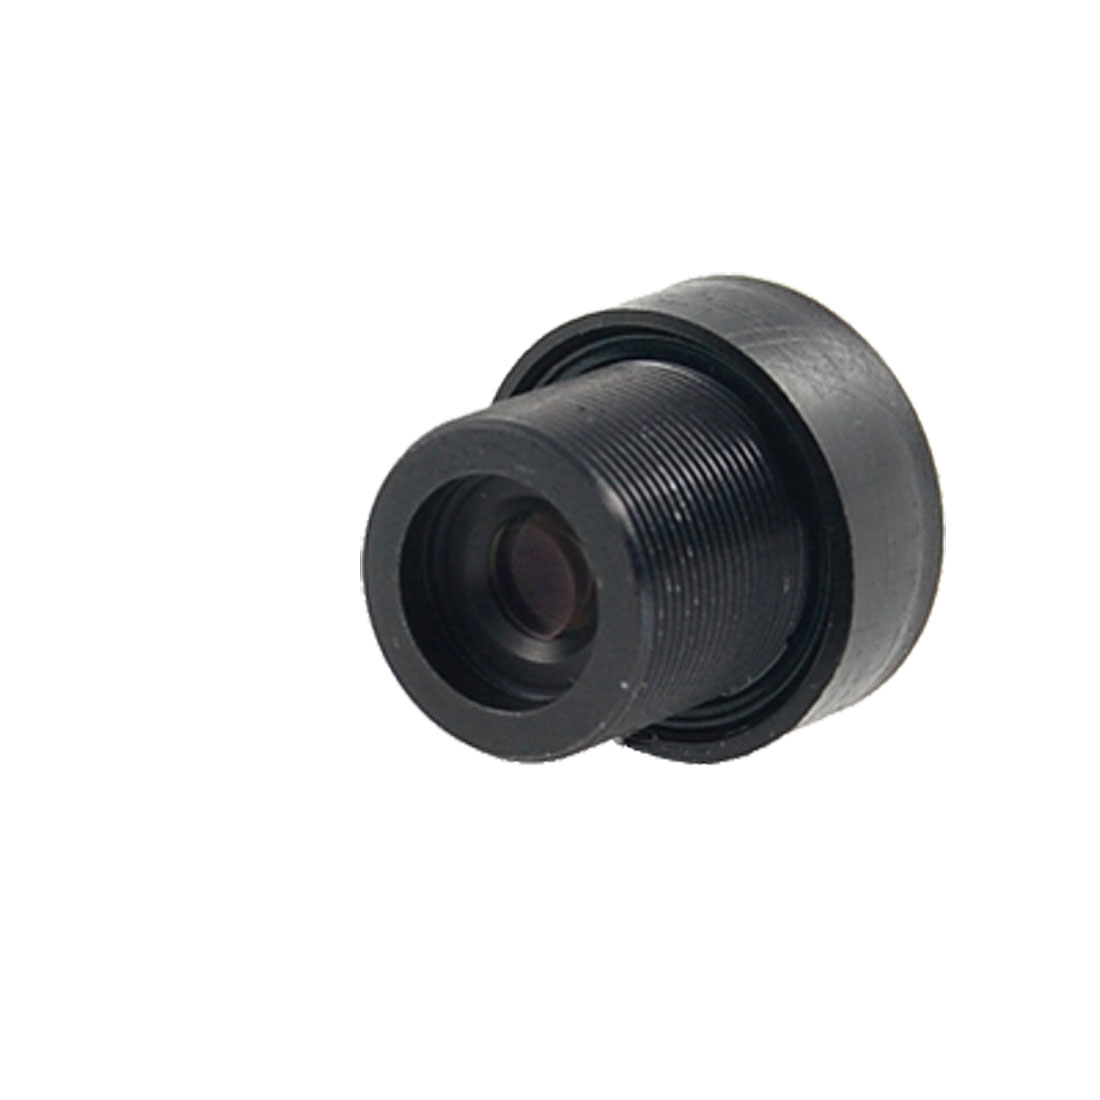 "Board 12mm 30 Degree Angle CCTV Security Camera Lens for 1/3"" CCD"